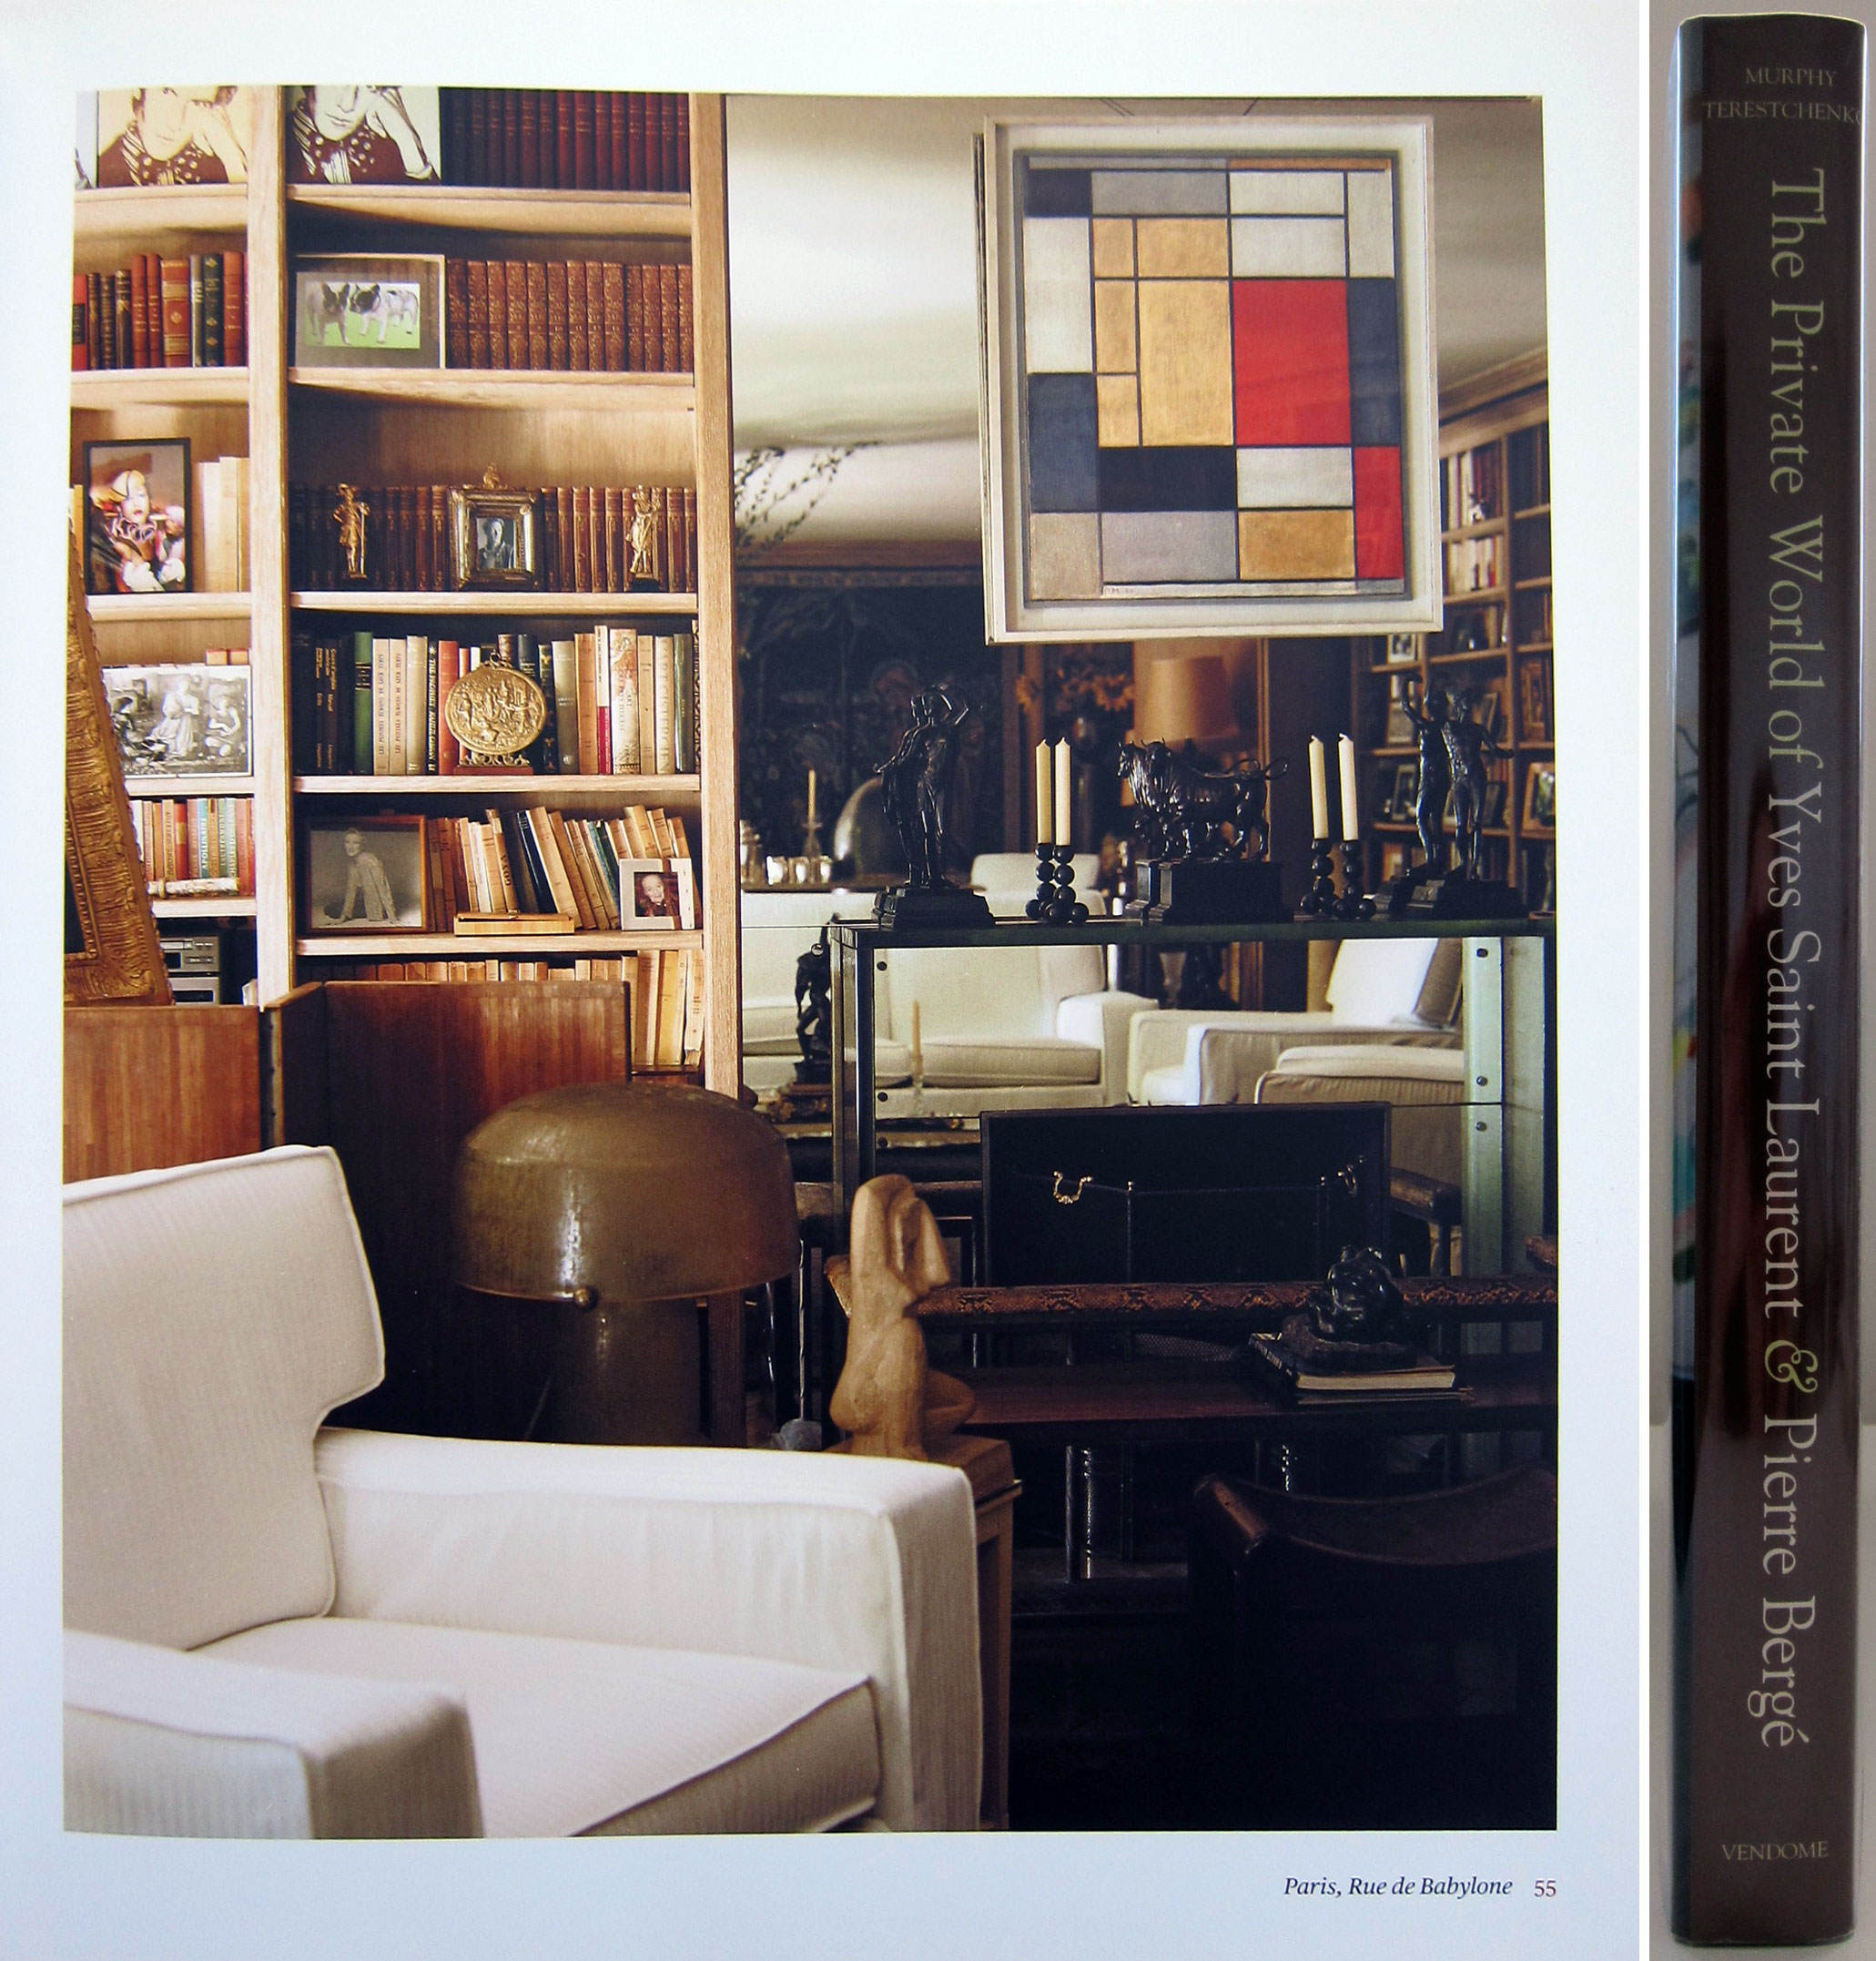 6ffe40fcaa5 A beautiful book, The Private World of Yves Saint Laurent & Pierre Berge  published by Vendome Press. Truly an artist and master curator of all fine  things.